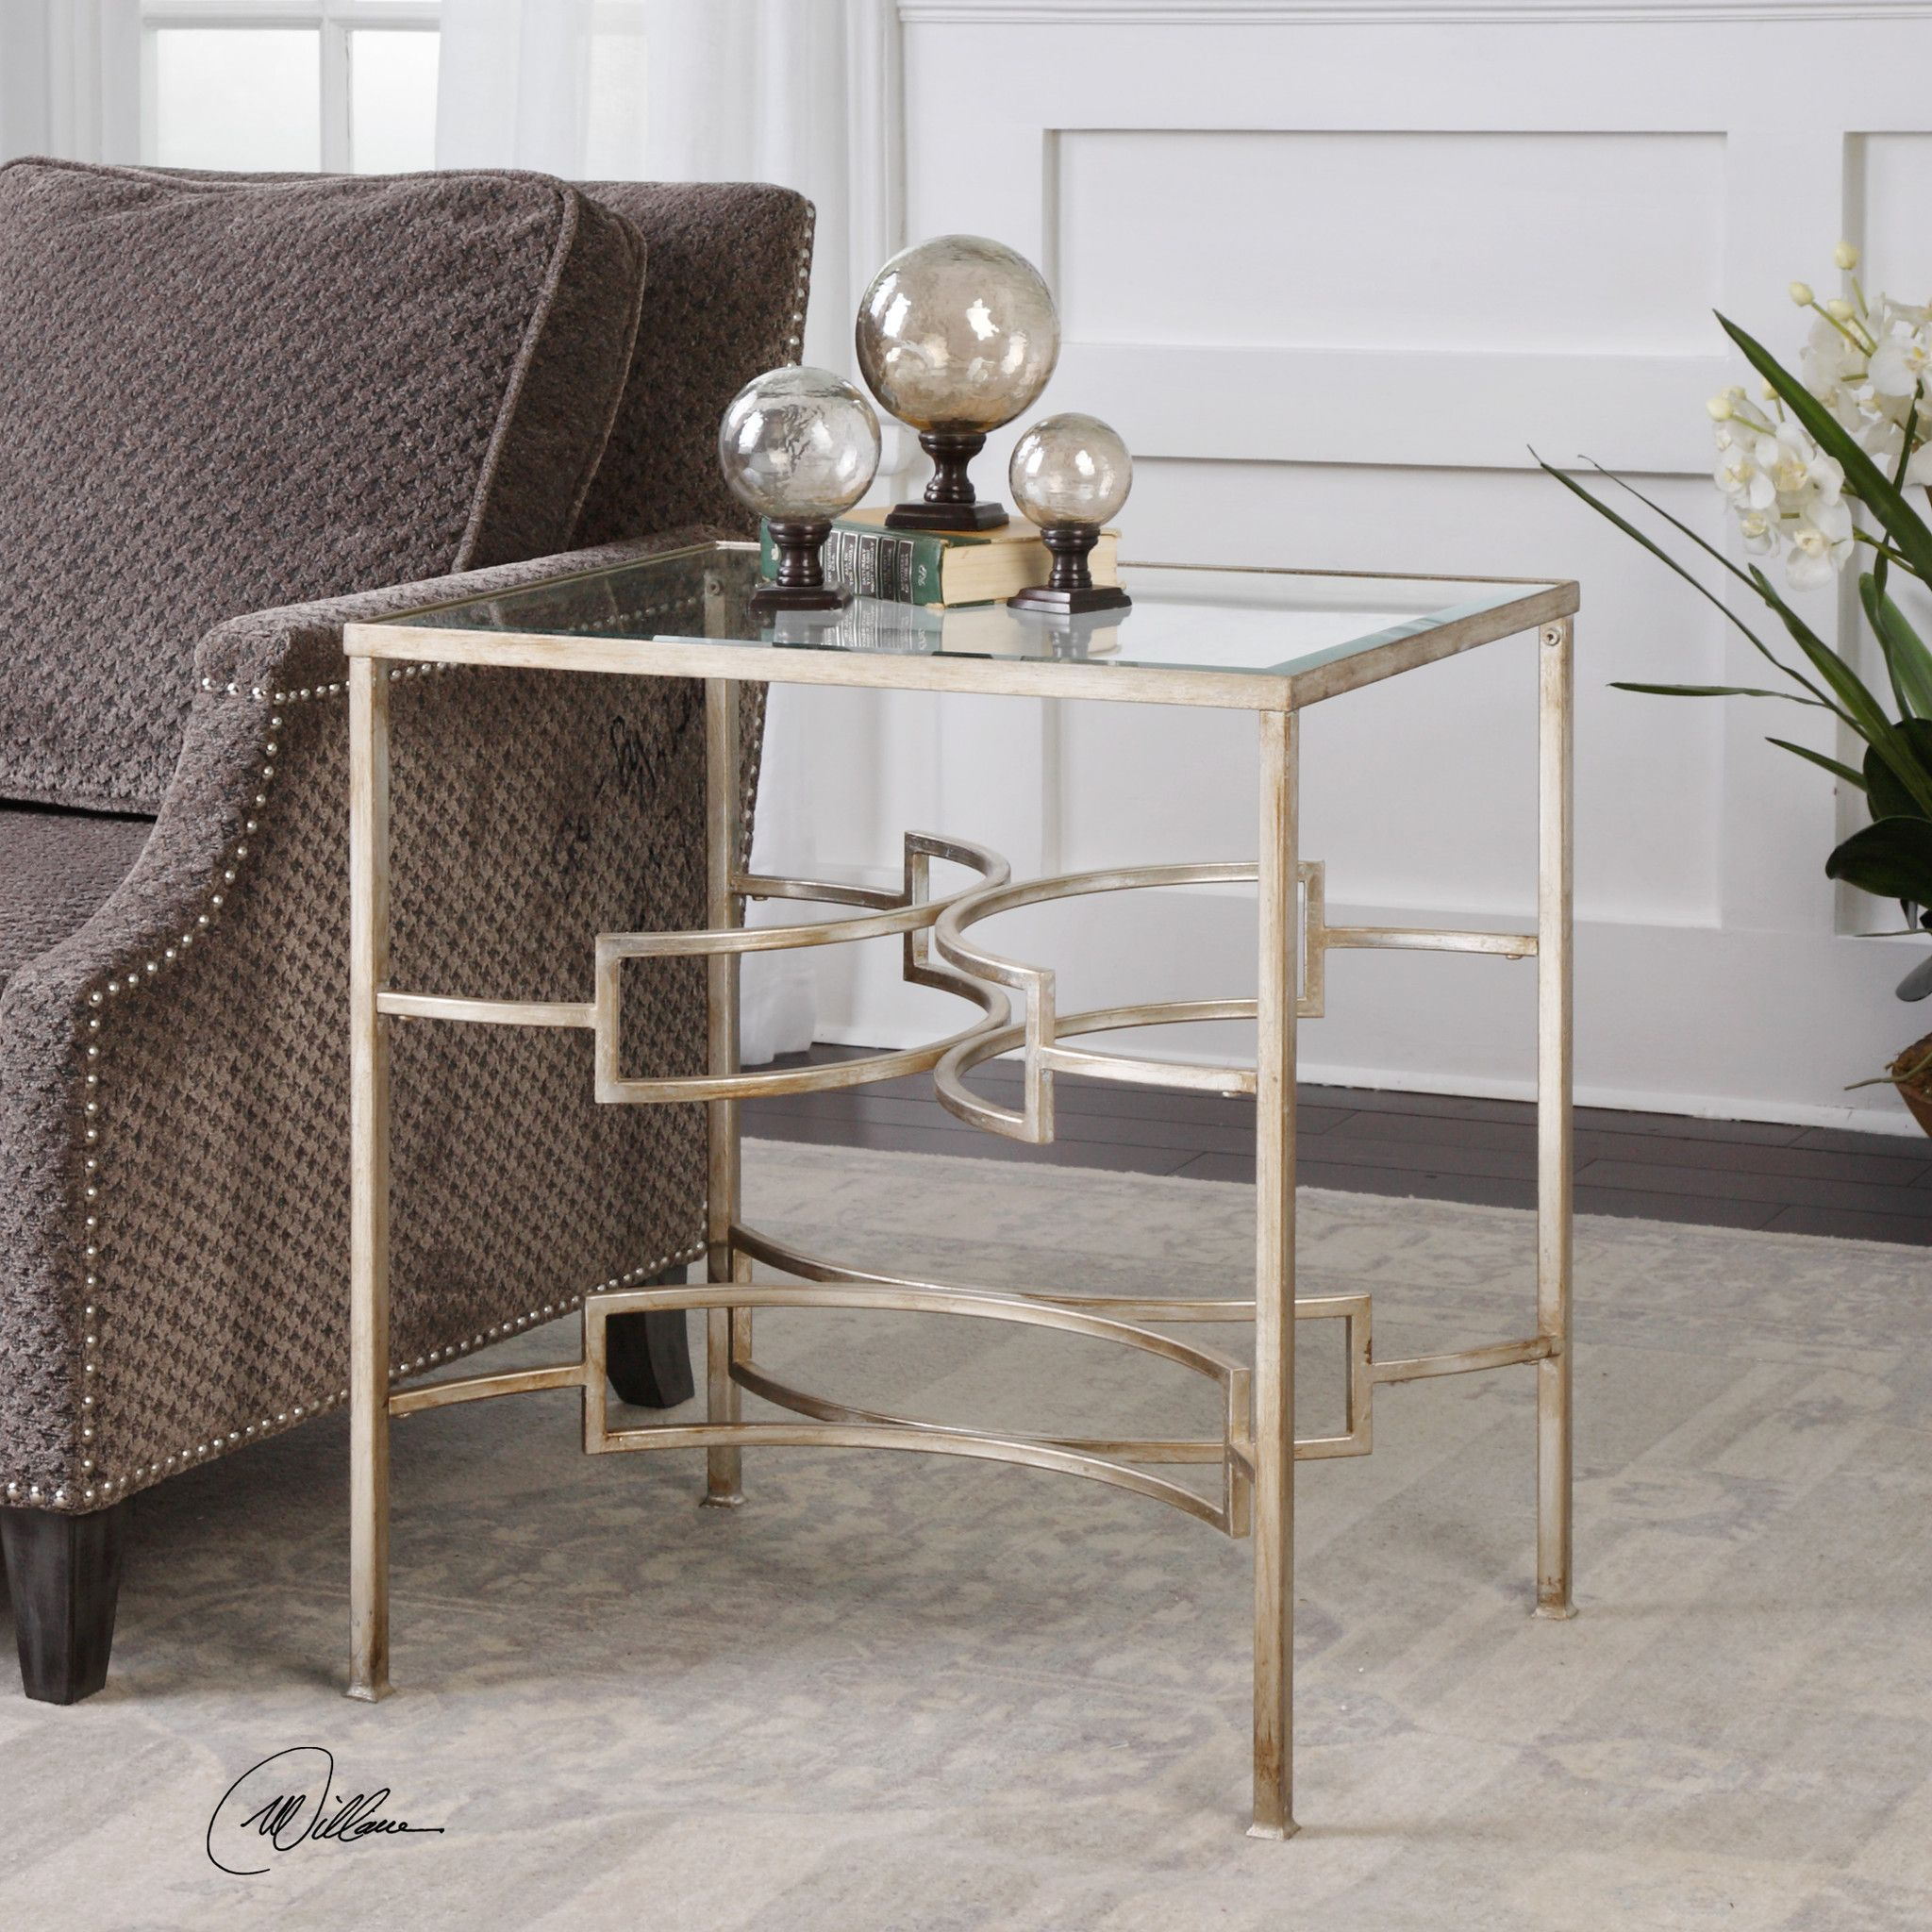 Uttermost Eilinora Silver End Table Products Pinterest Products